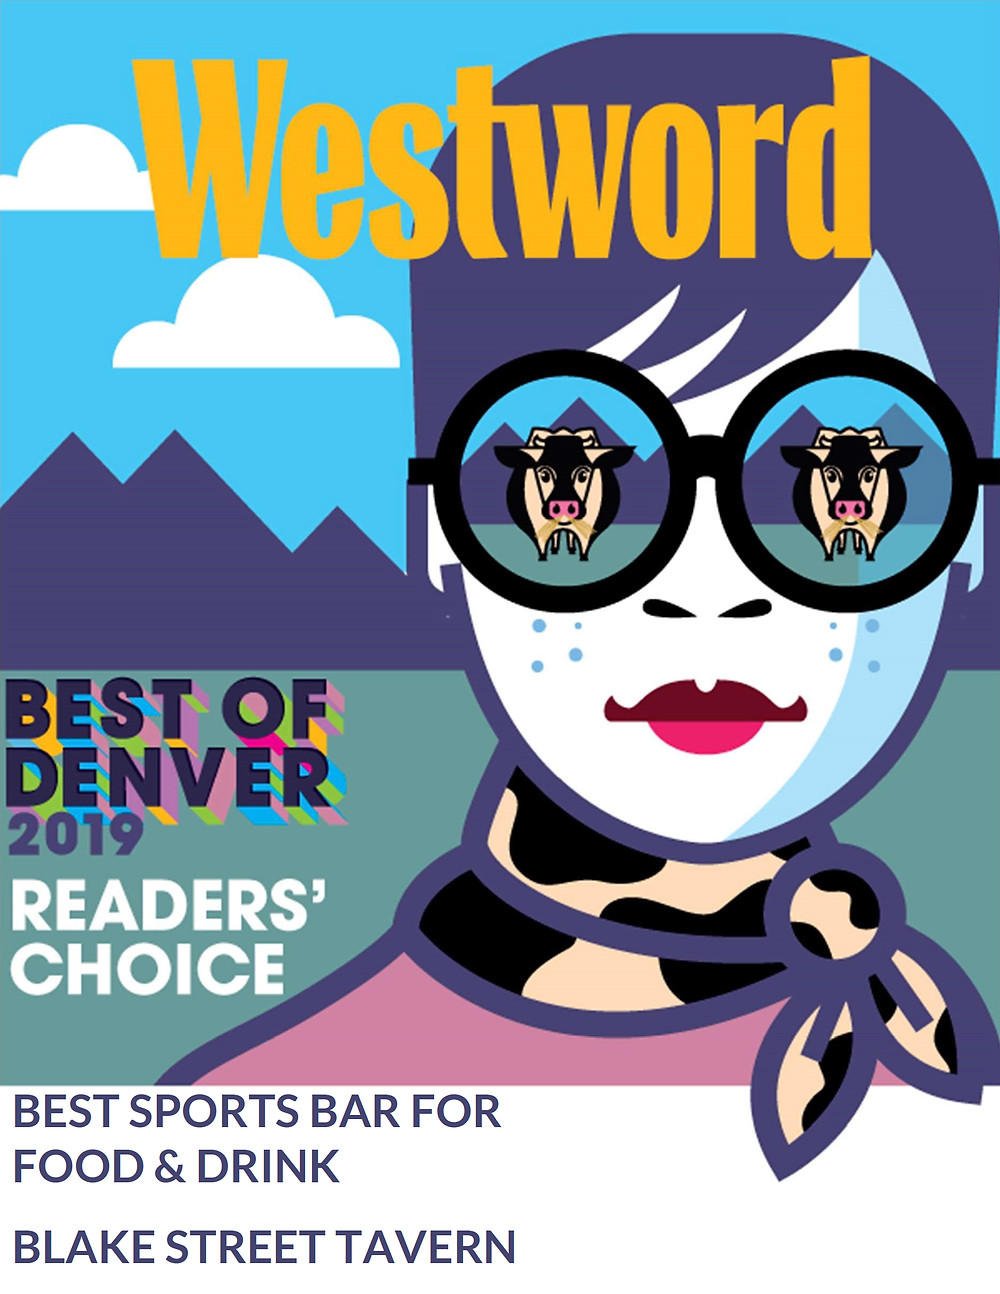 Denvers Best Sports Bar for Food and Drink - 2019 Readers' Choice, Westword